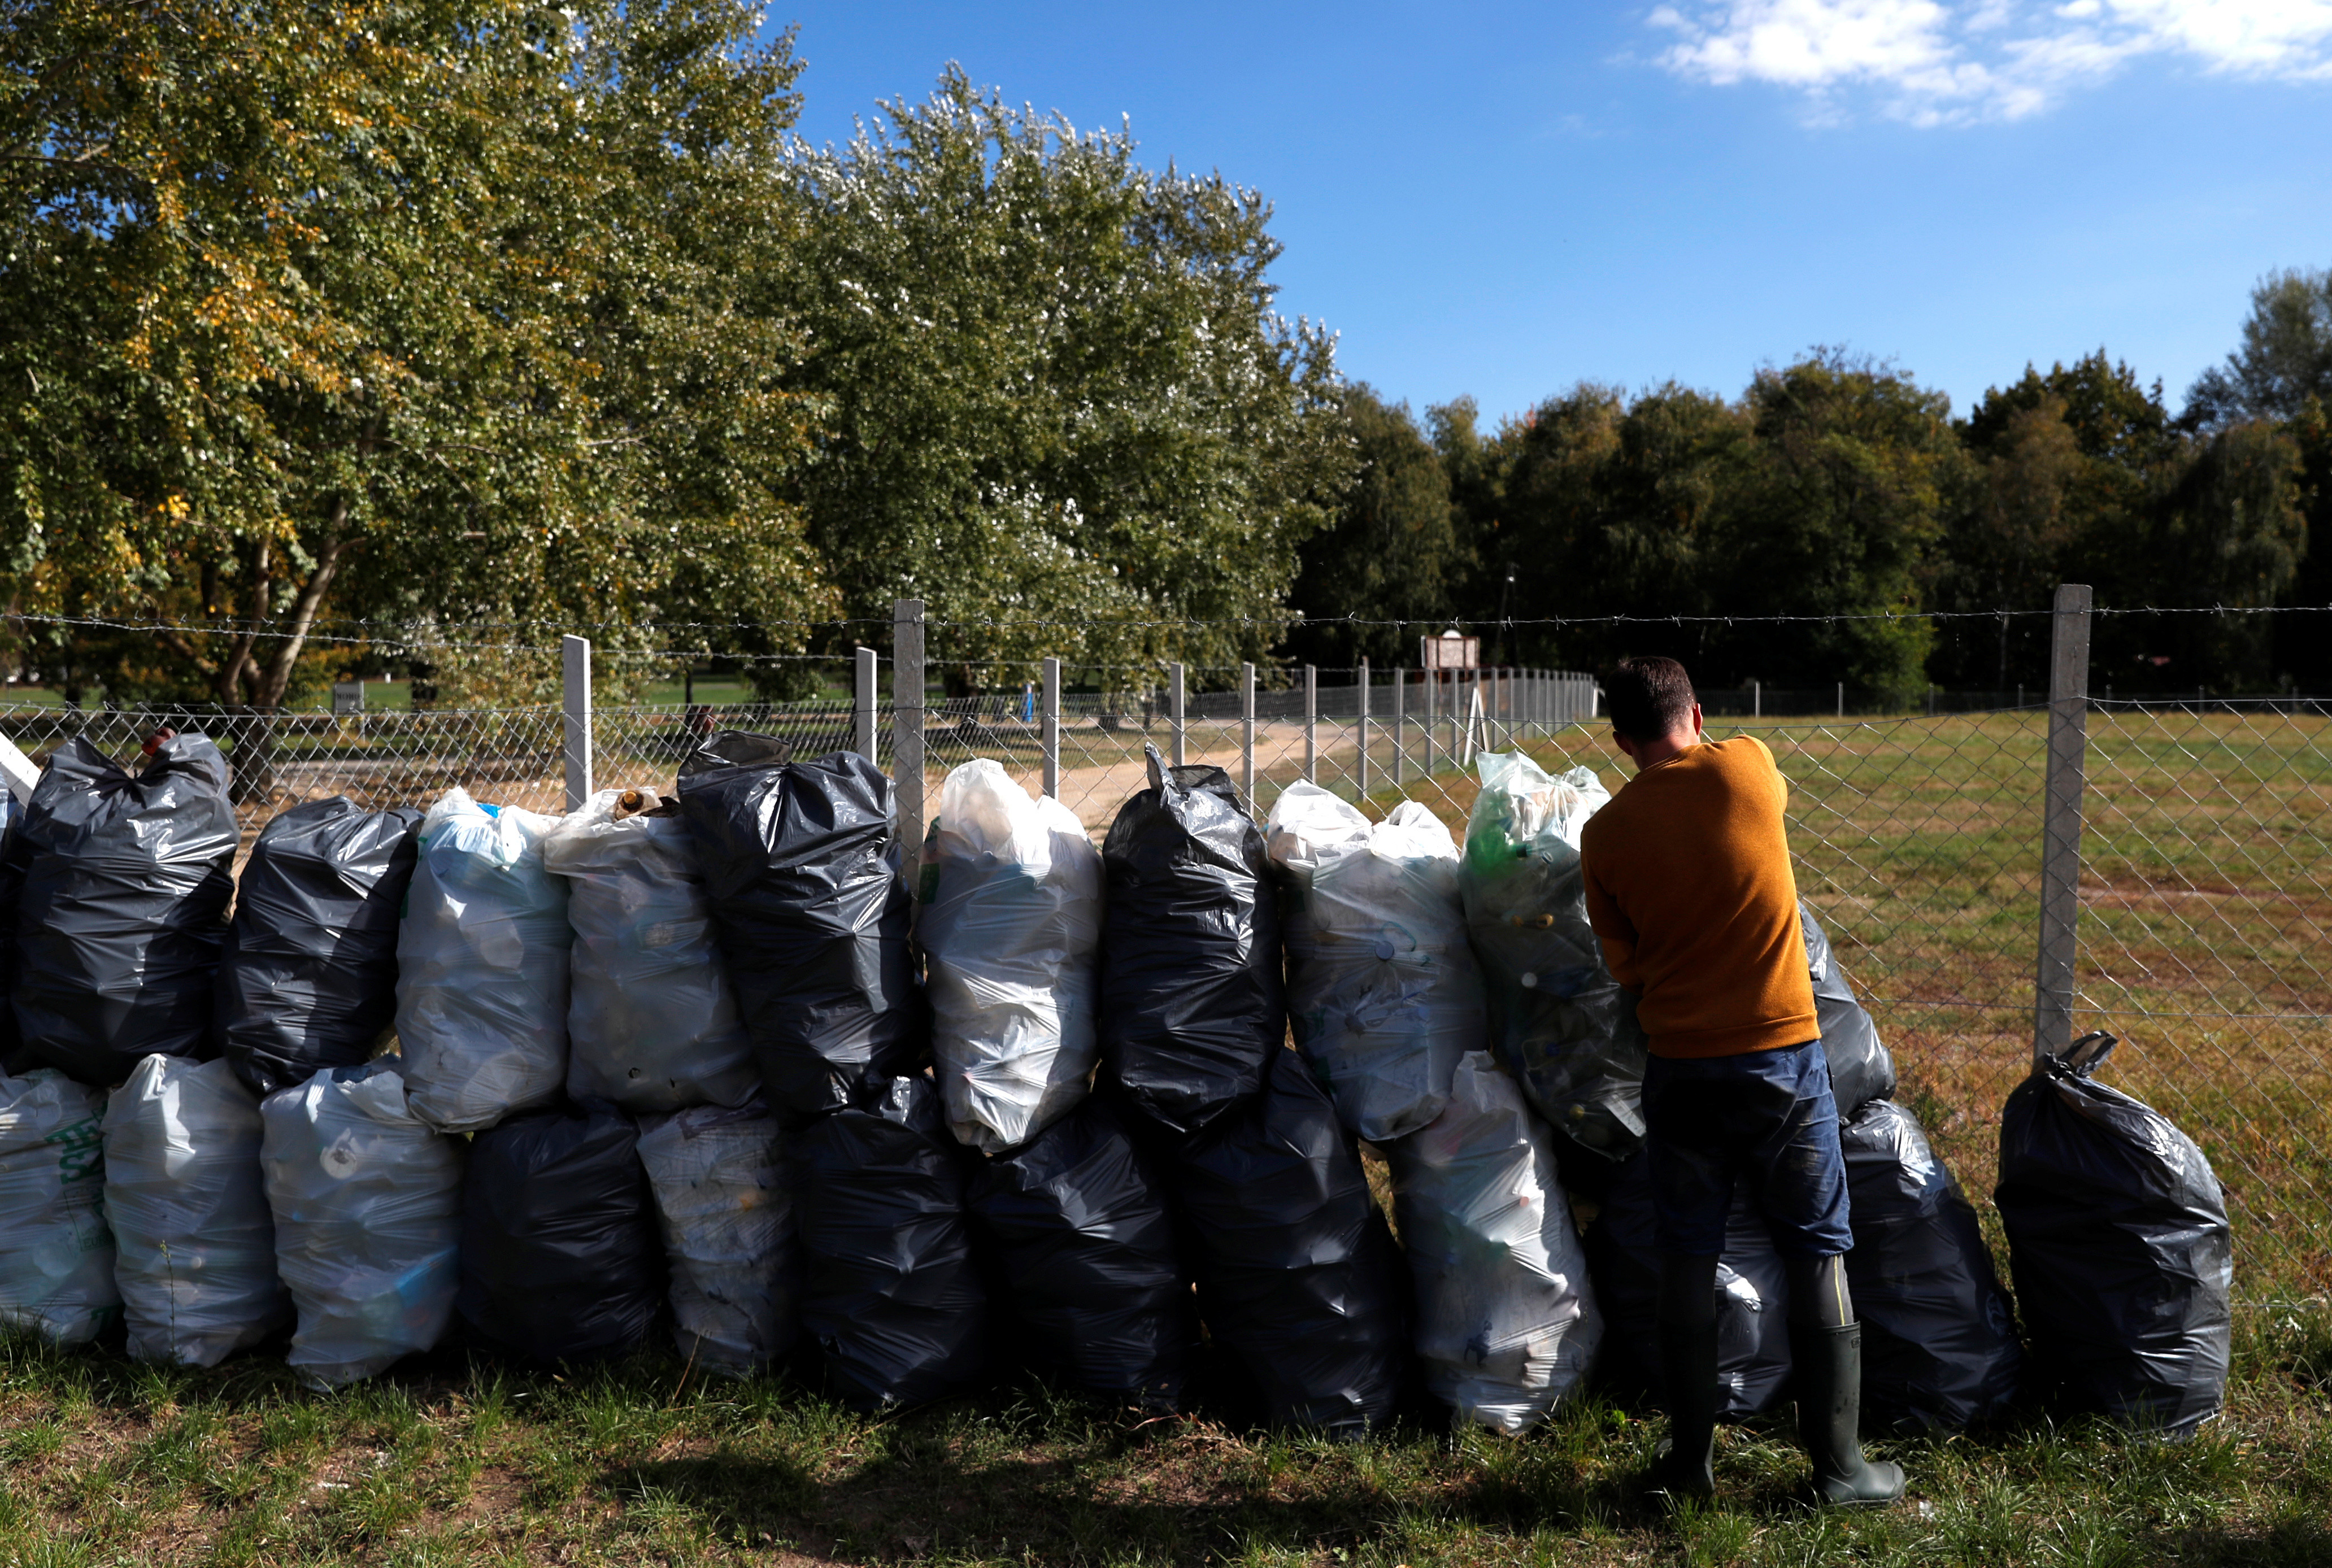 Bence Pardy, 32-year-old, takes plastic bags full of waste in Tiszafured, Hungary, October 1, 2019. Picture taken October 1, 2019. REUTERS/Bernadett Szabo - RC1146297110